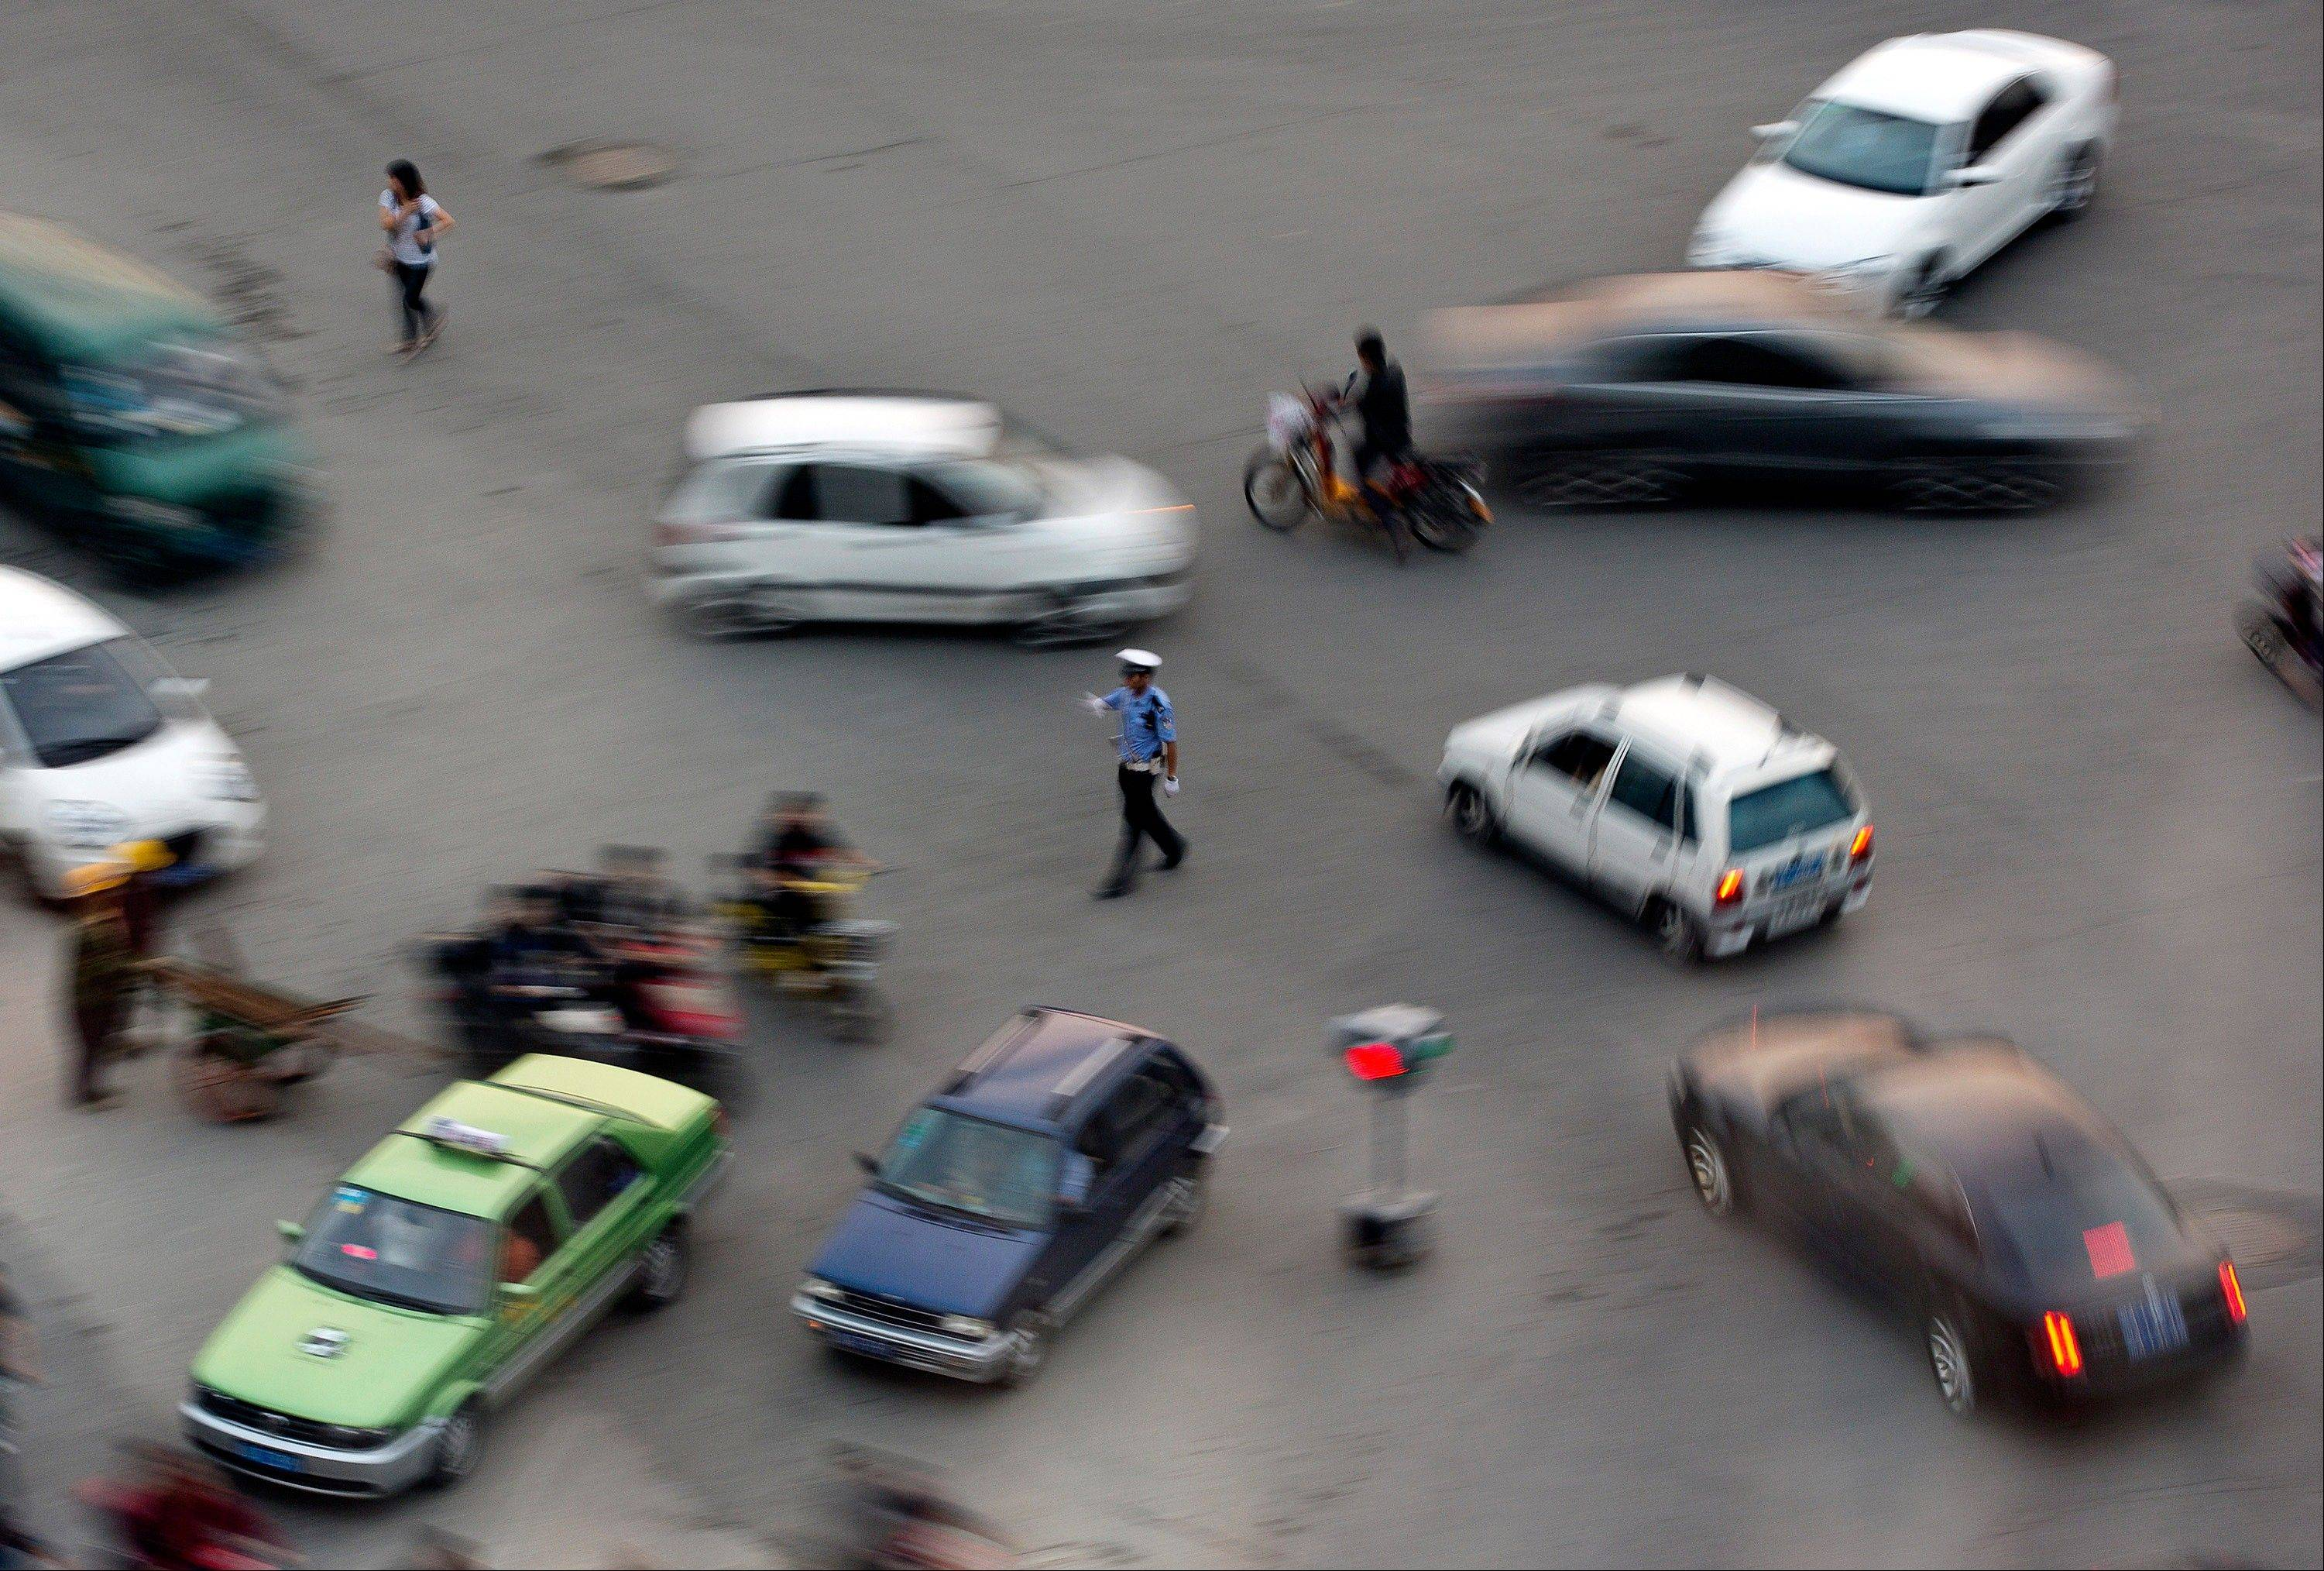 A Chinese policeman directs traffic at a road junction in Chengdu in southwest China's Sichuan province Monday.